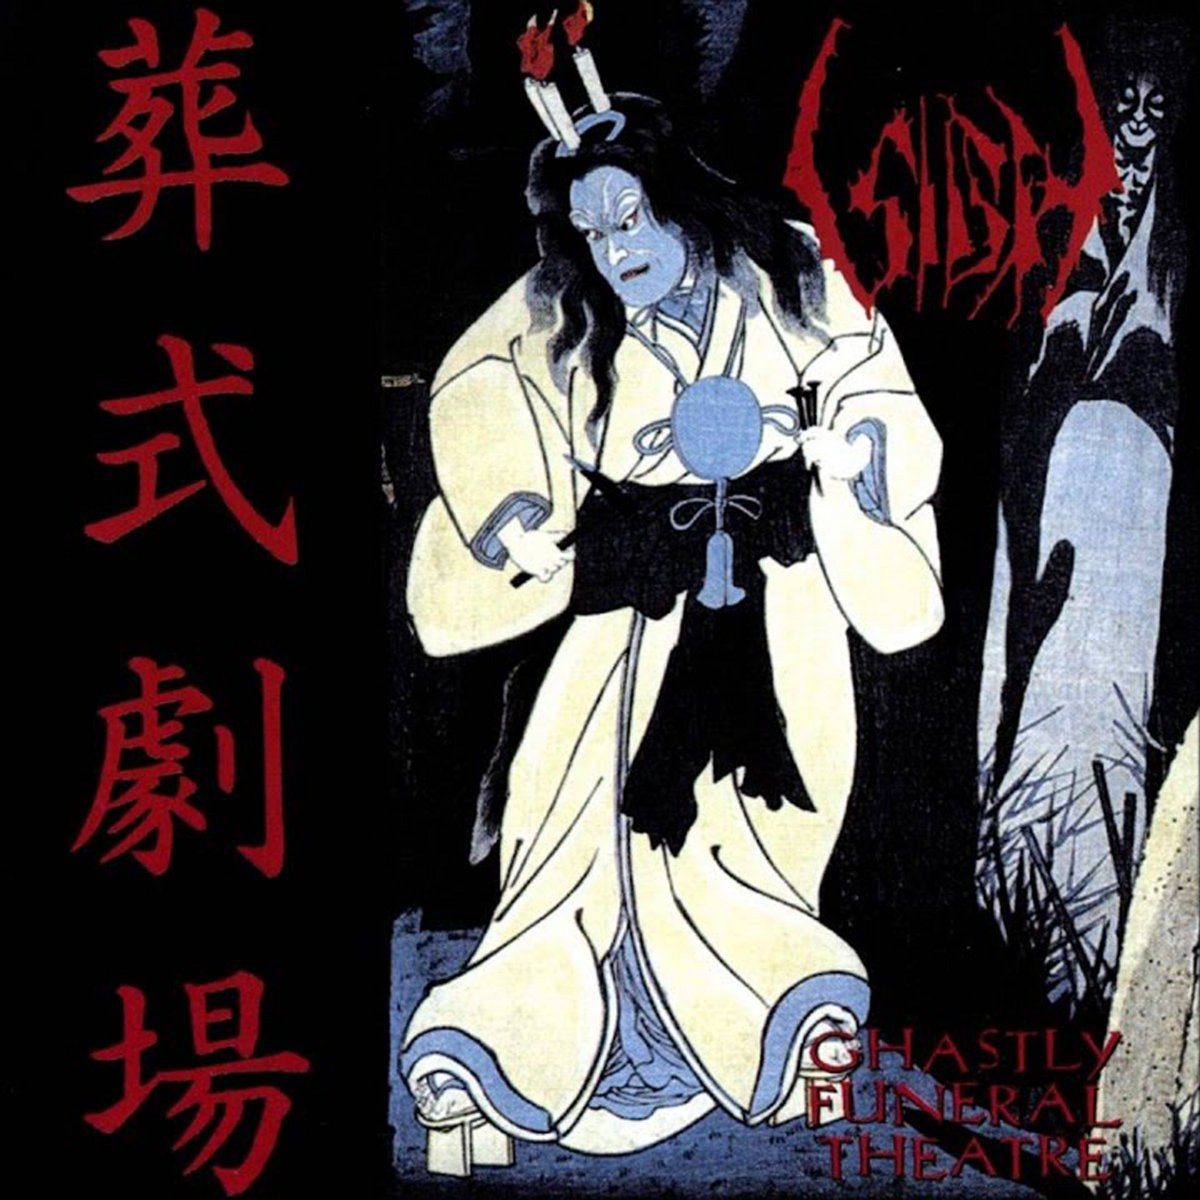 Reviews for Sigh - 葬式劇場 (Ghastly Funeral Theatre)